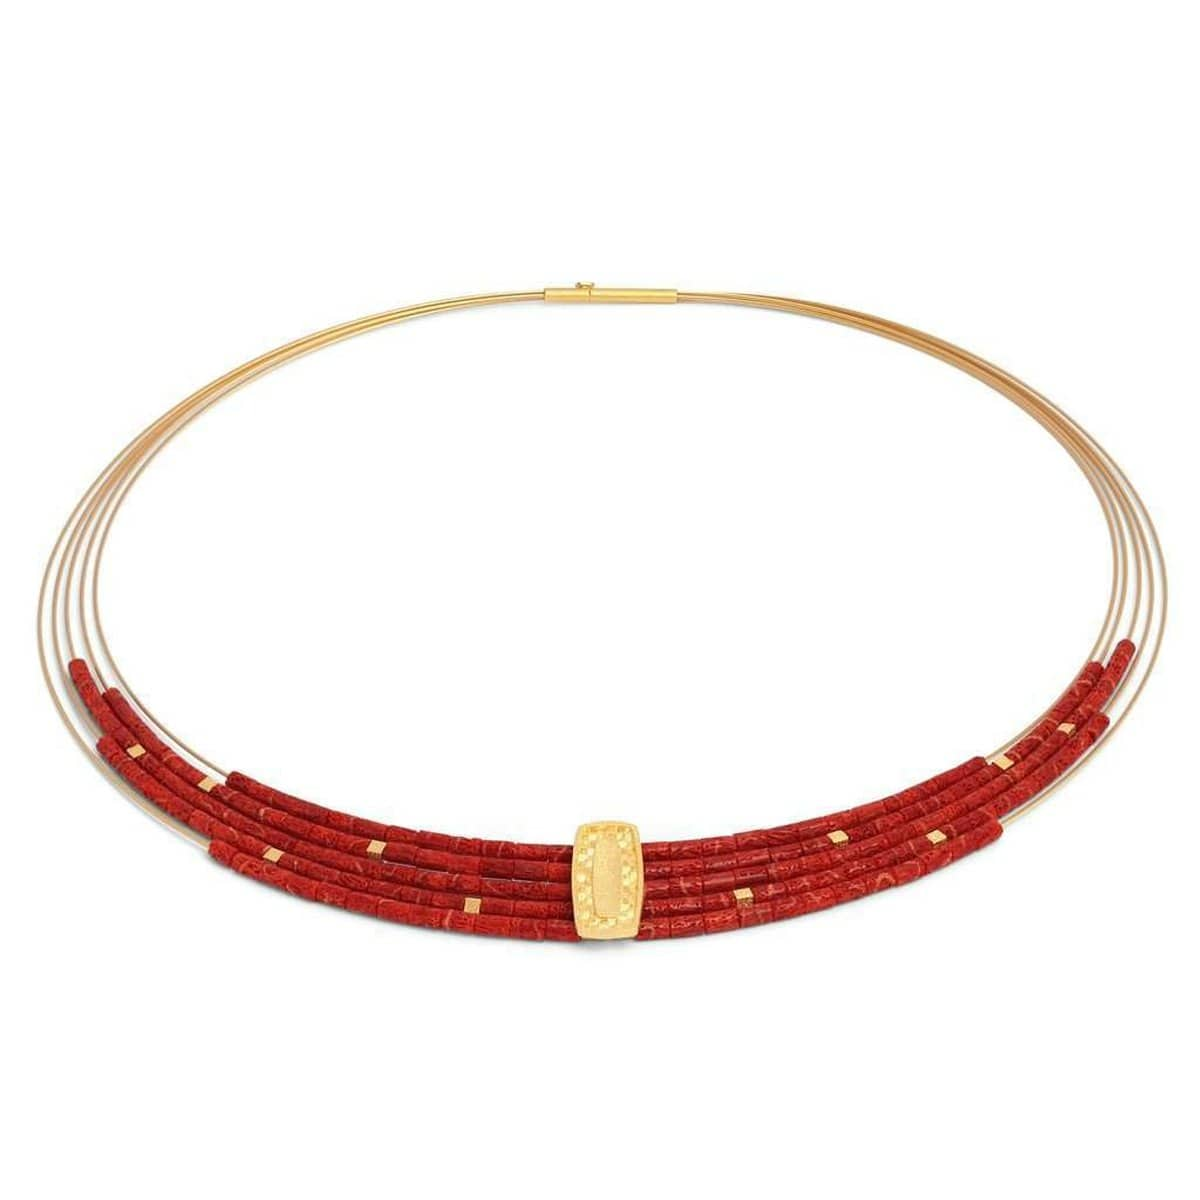 Movena Red Coral Necklace - 84922296-Bernd Wolf-Renee Taylor Gallery